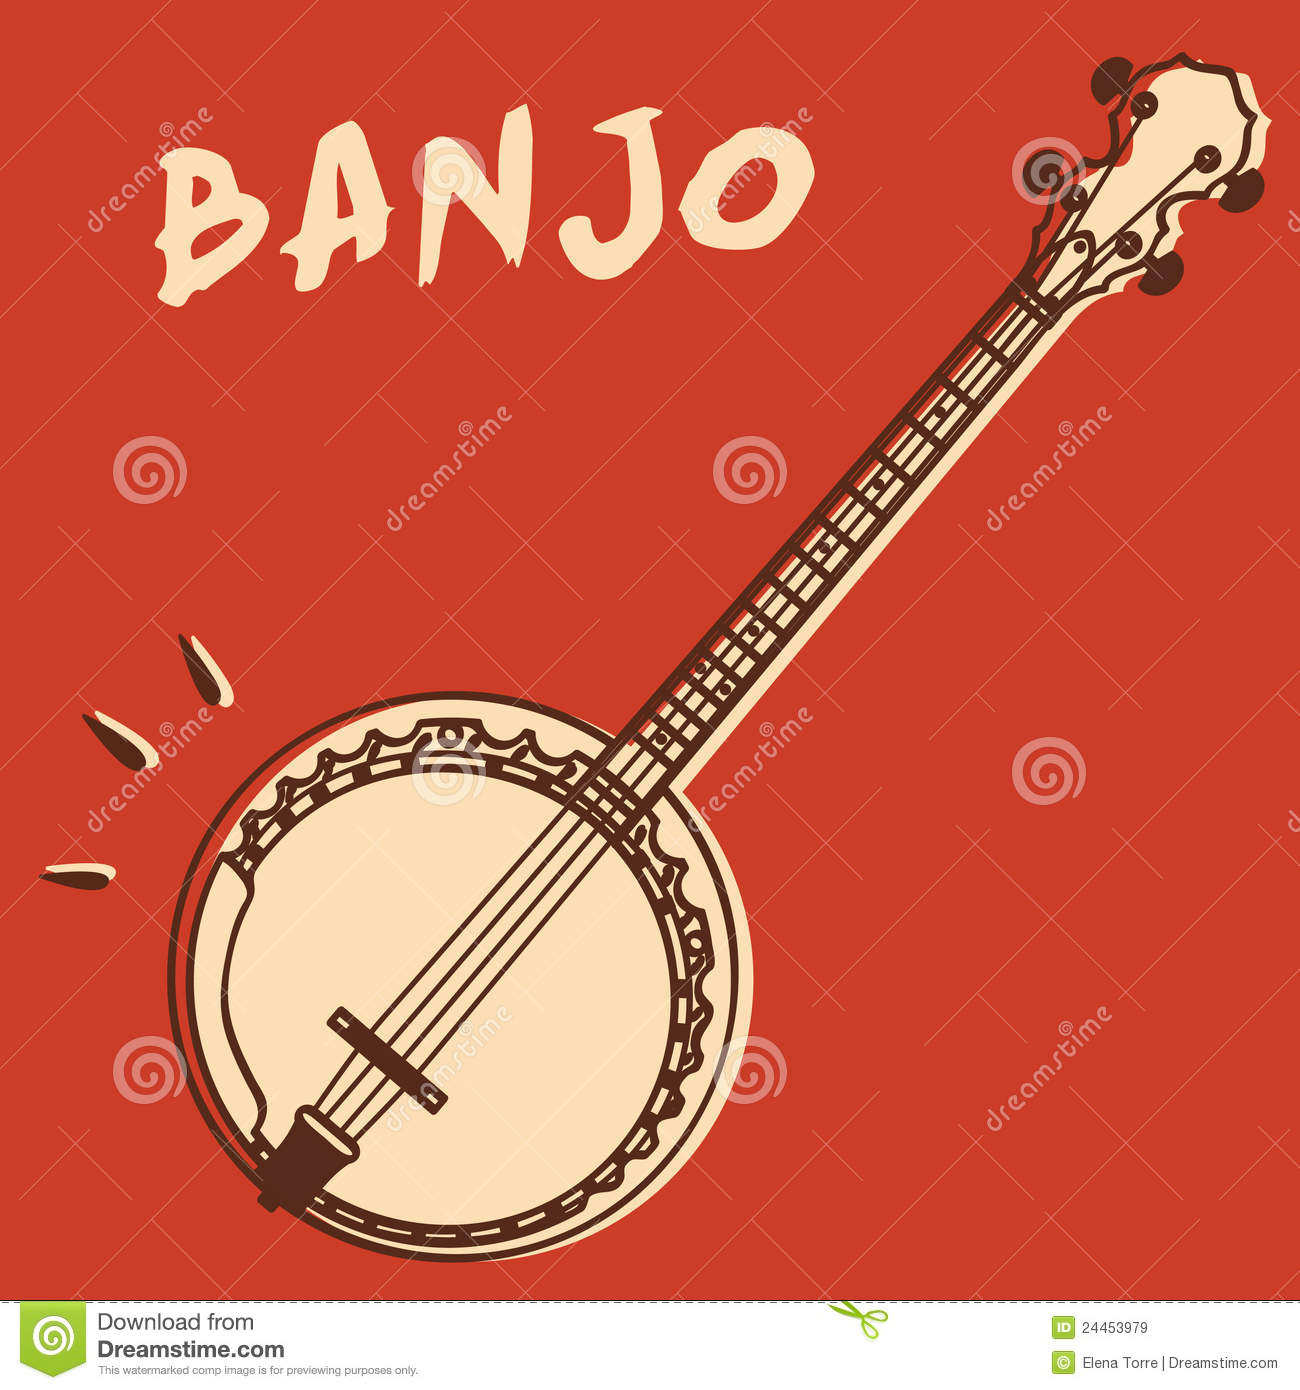 Banjo Vector Stock Vector Image Of Concert Music Acoustic 24453979